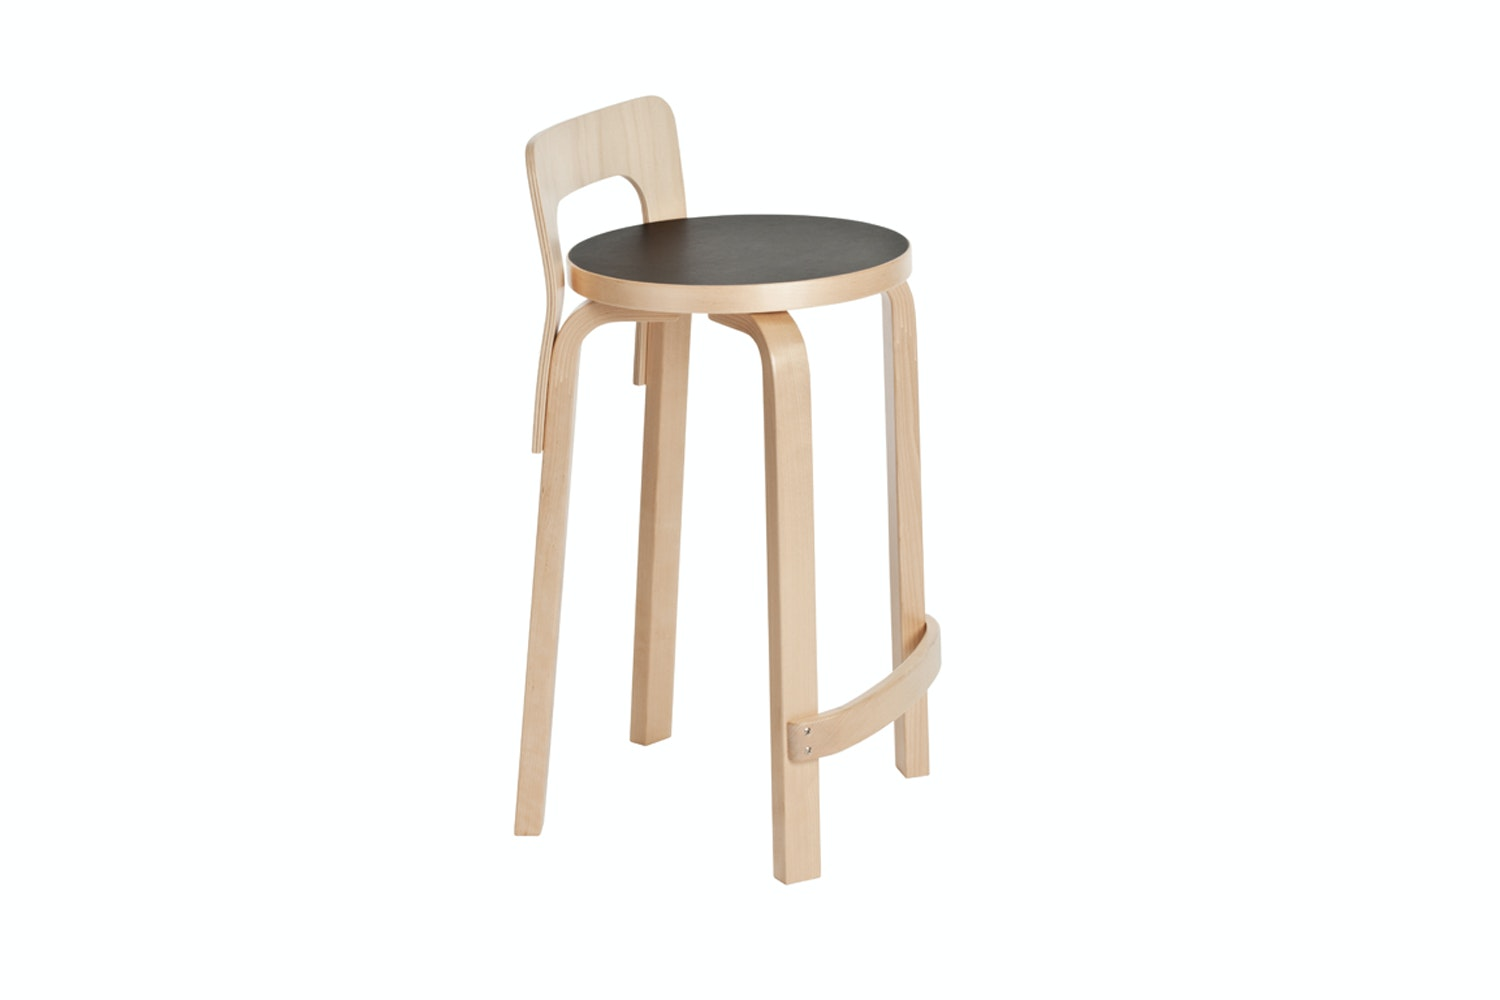 K65 High Chair by Alvar Aalto for Artek